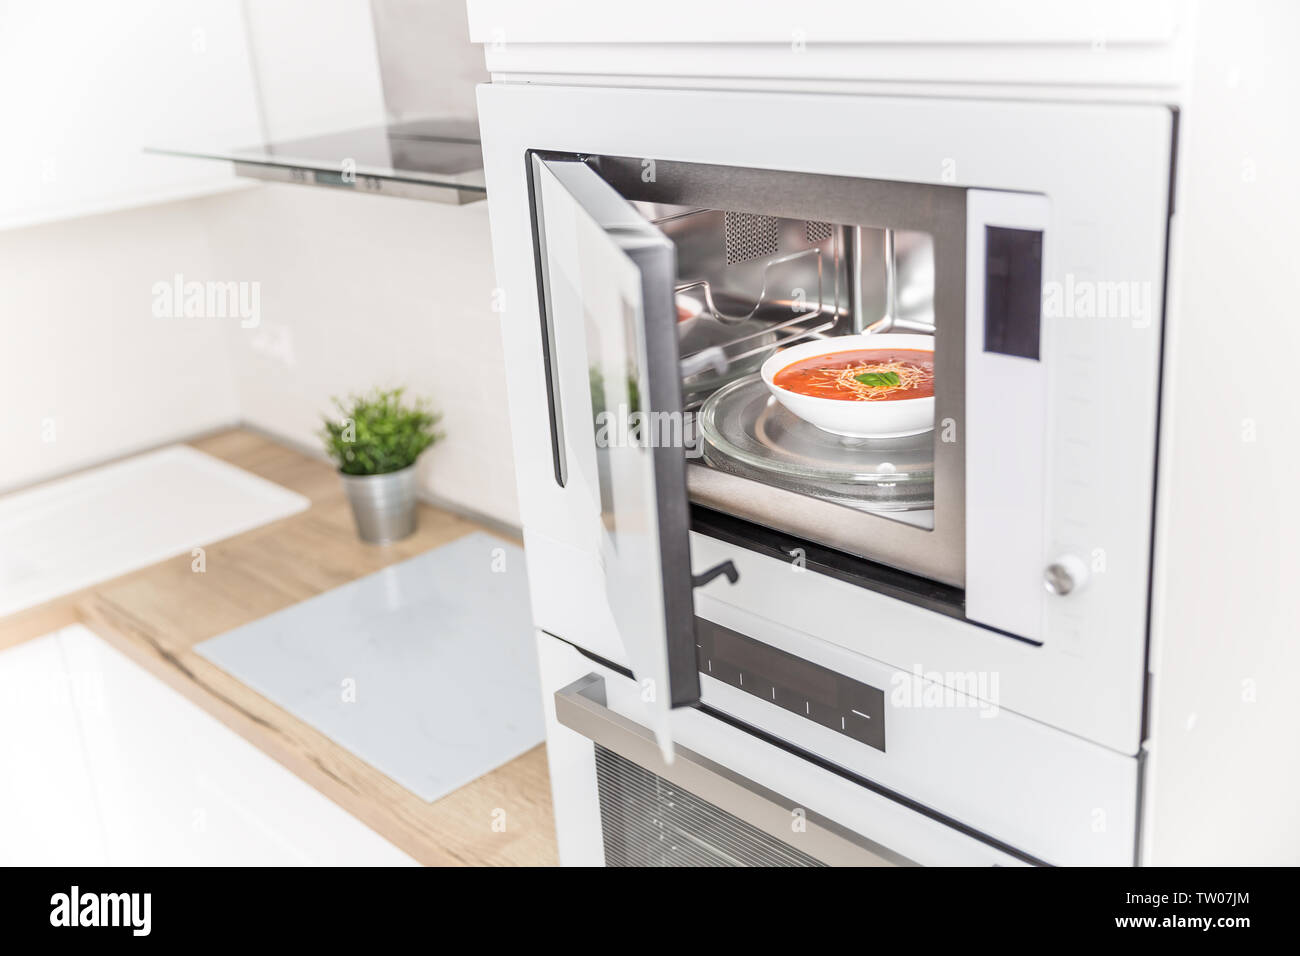 https www alamy com built in microwave oven in the kitchen with tomato soup in white plate image256317564 html